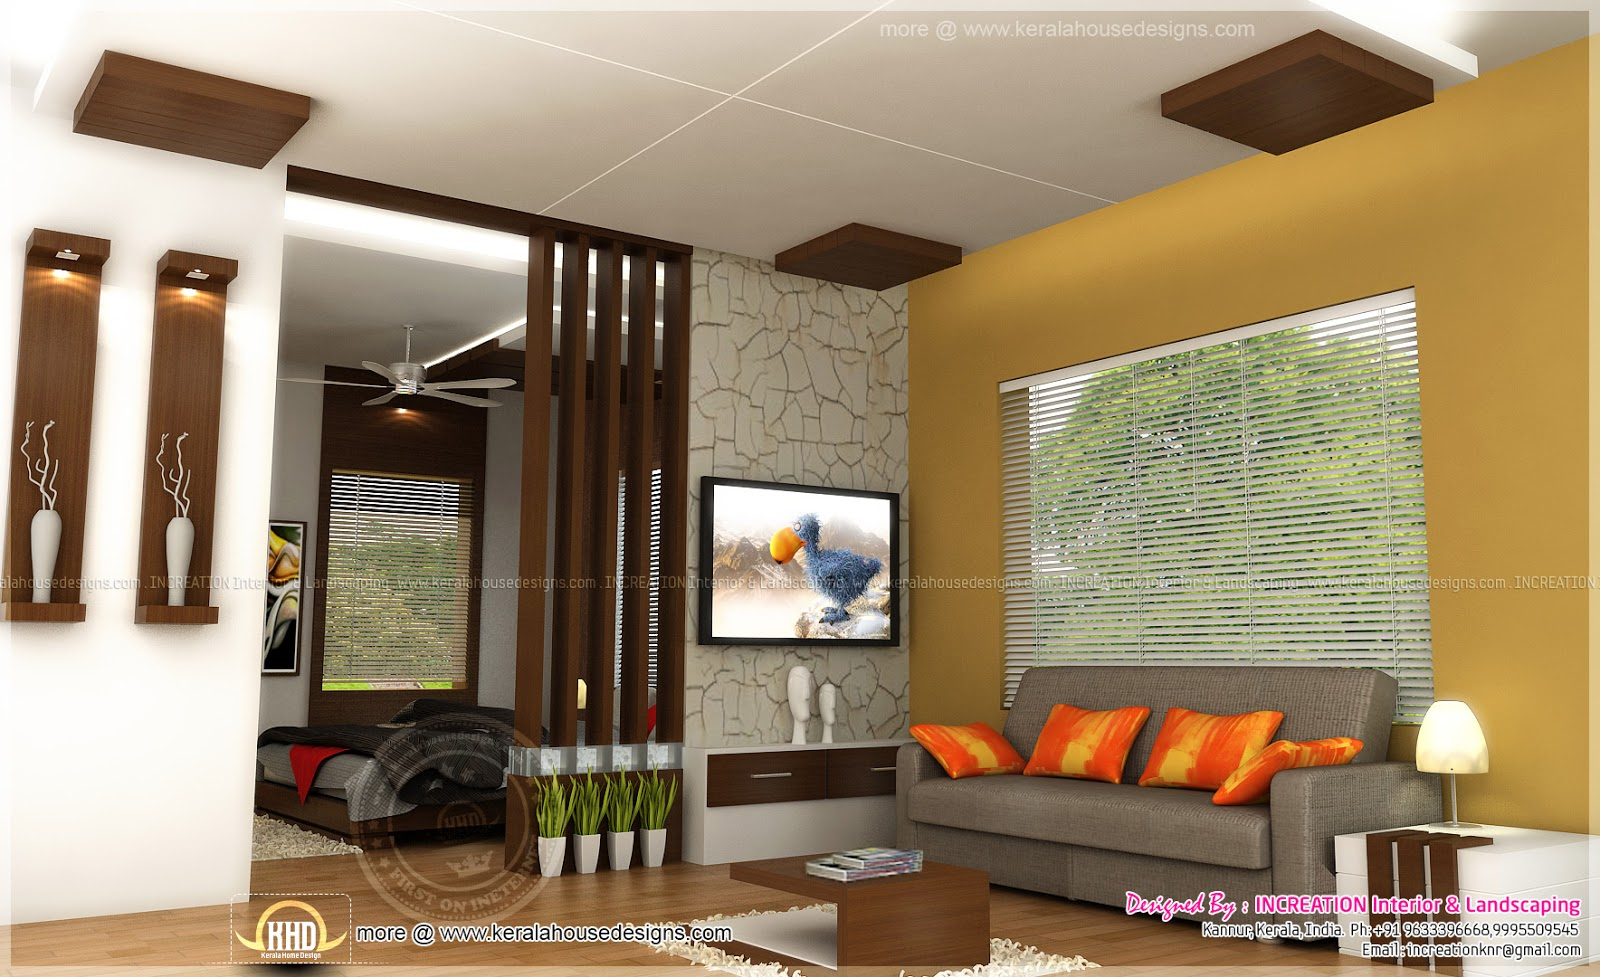 Interior designs from kannur kerala home kerala plans for Drawing room interior